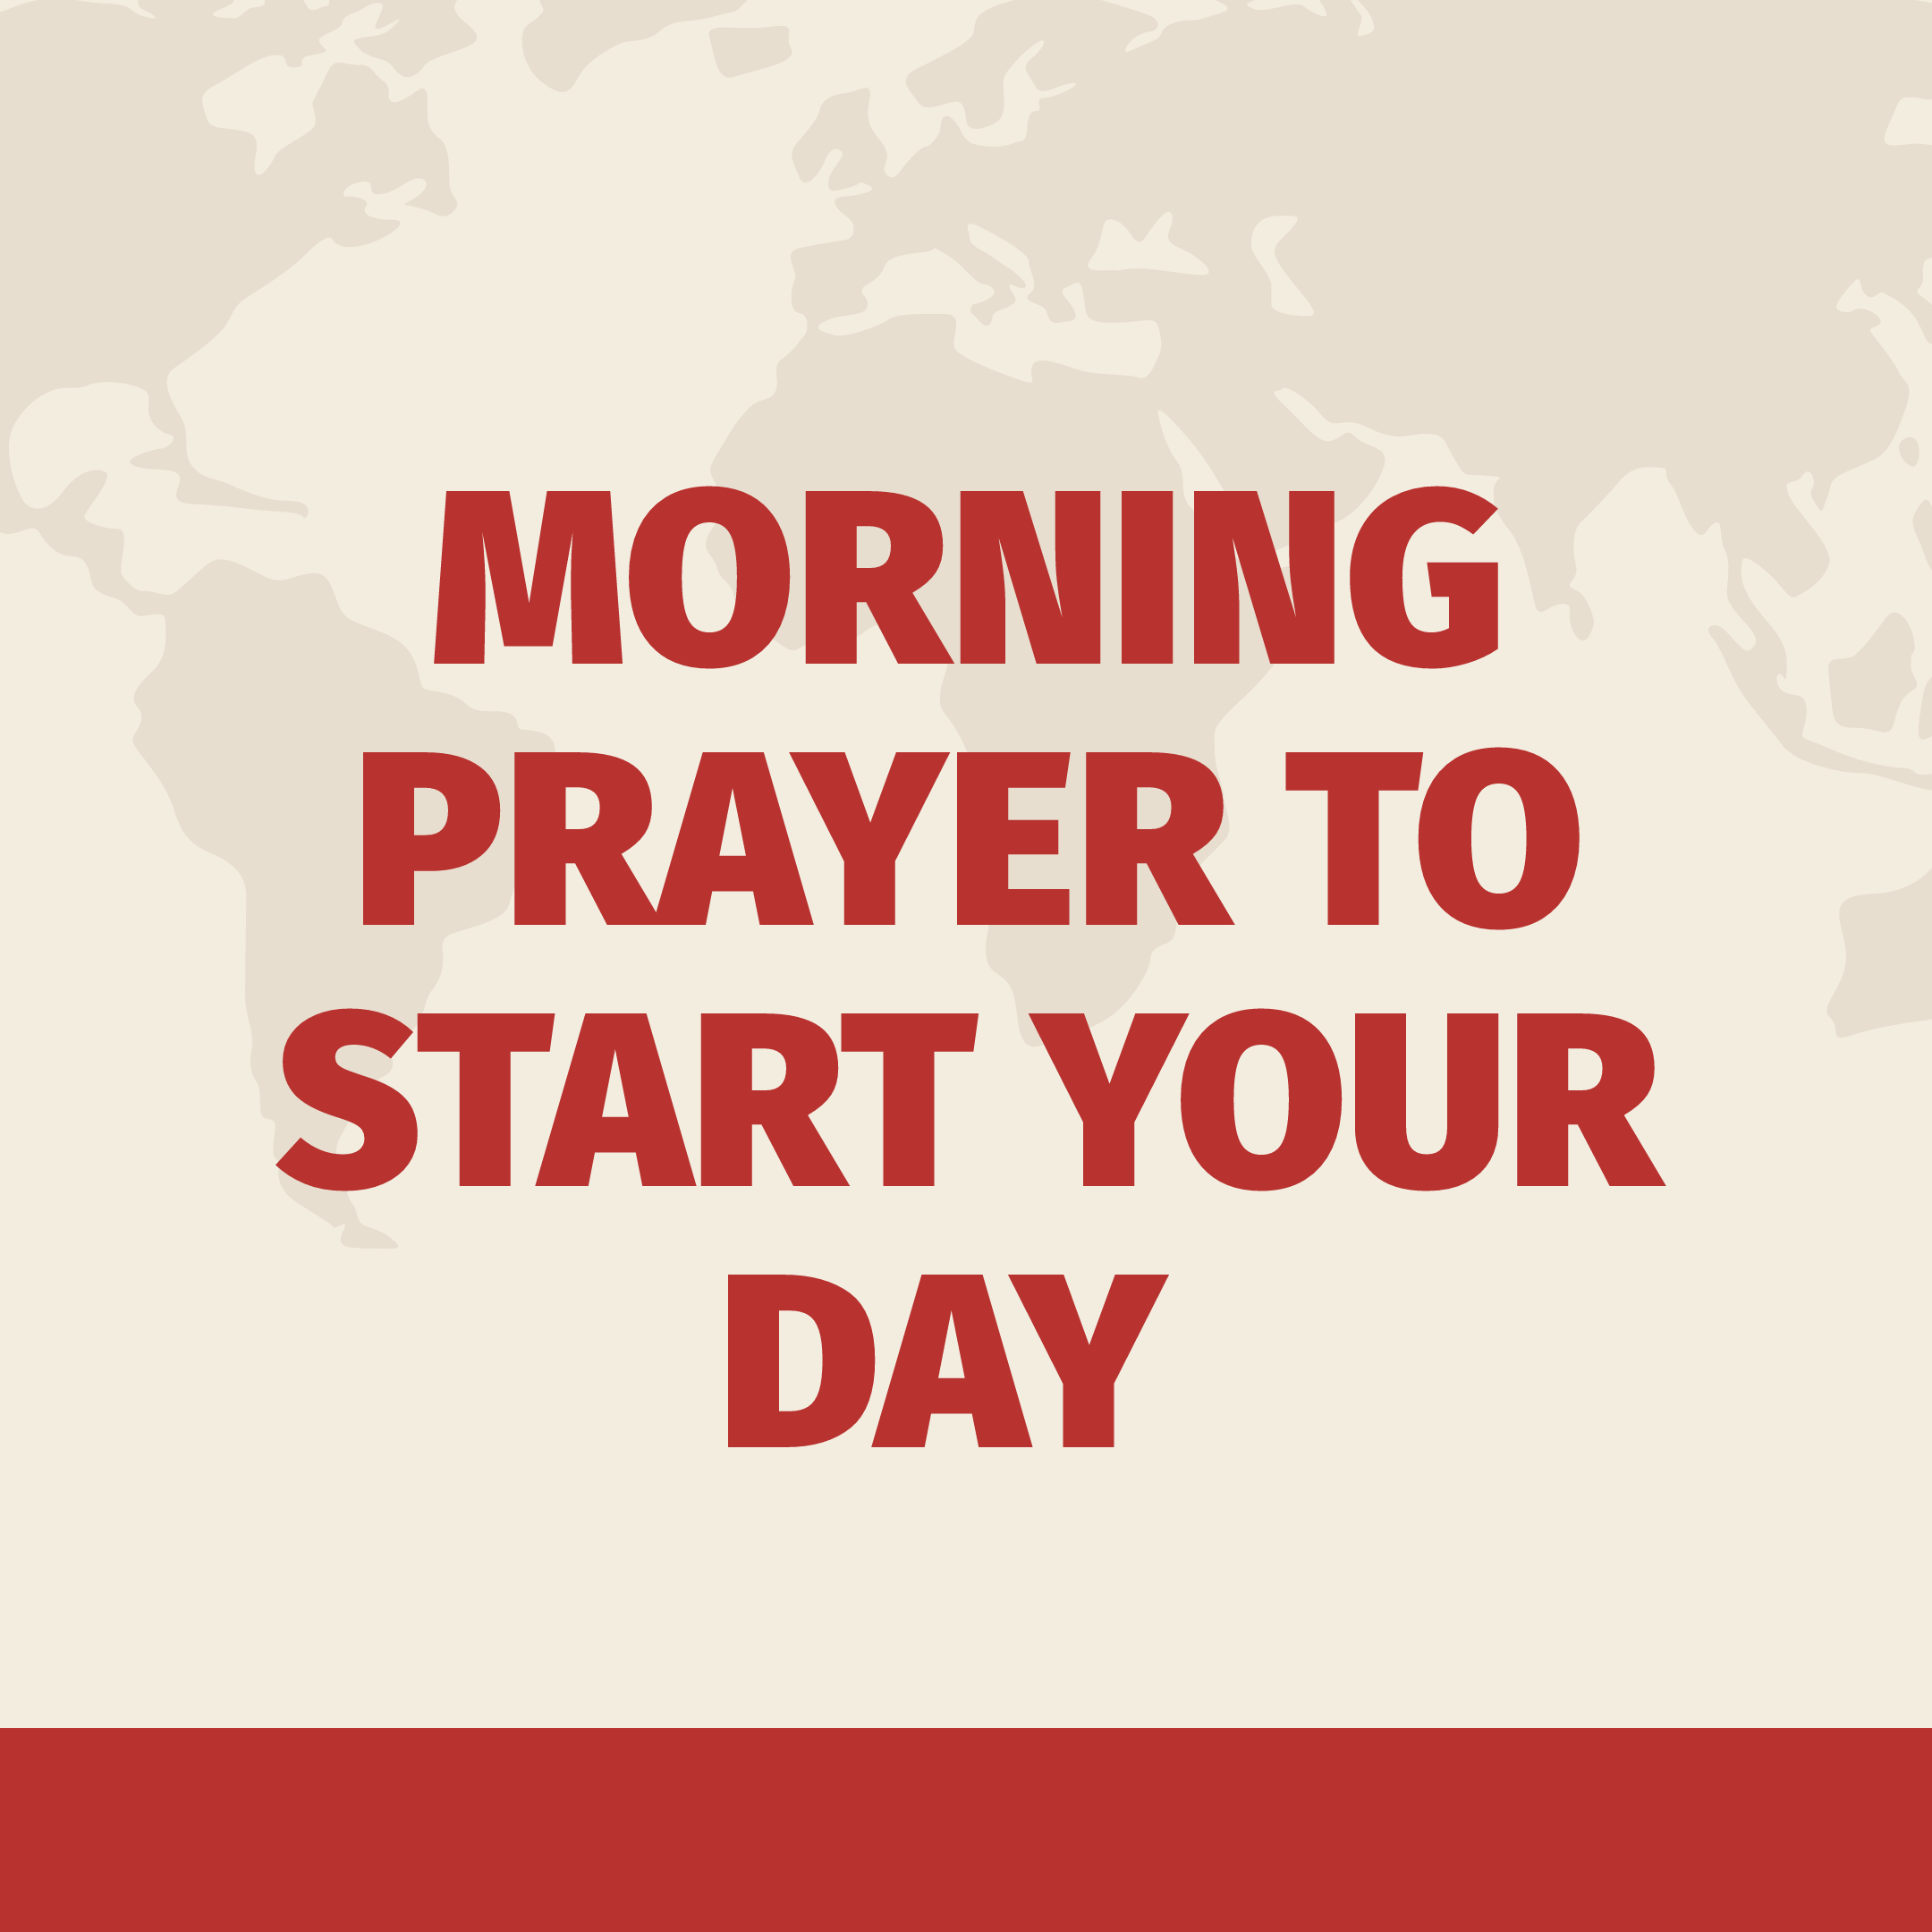 Start your day to morning prayers 5 Morning